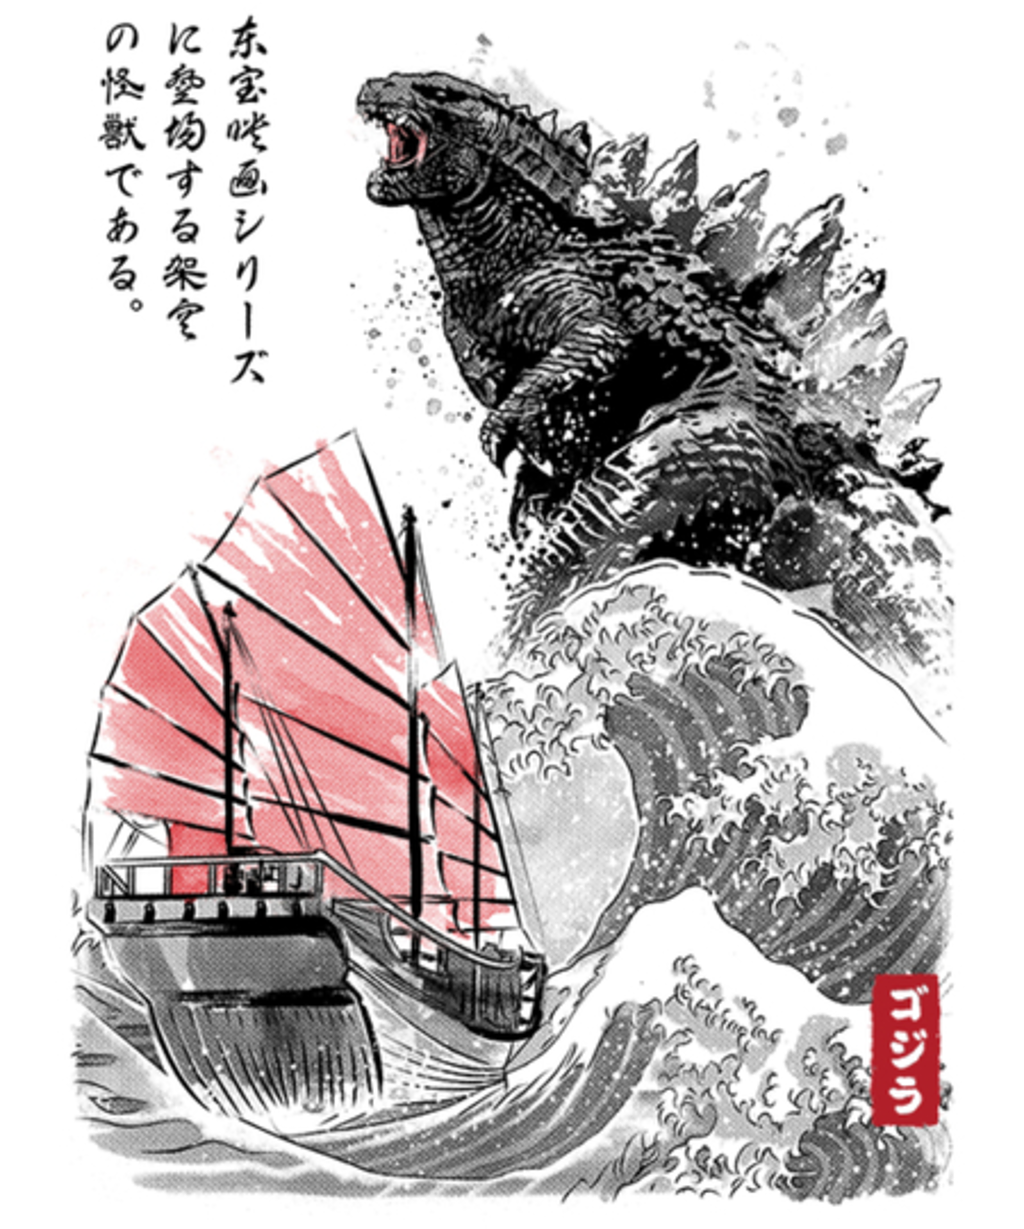 Qwertee: King of the Monsters sumi-e